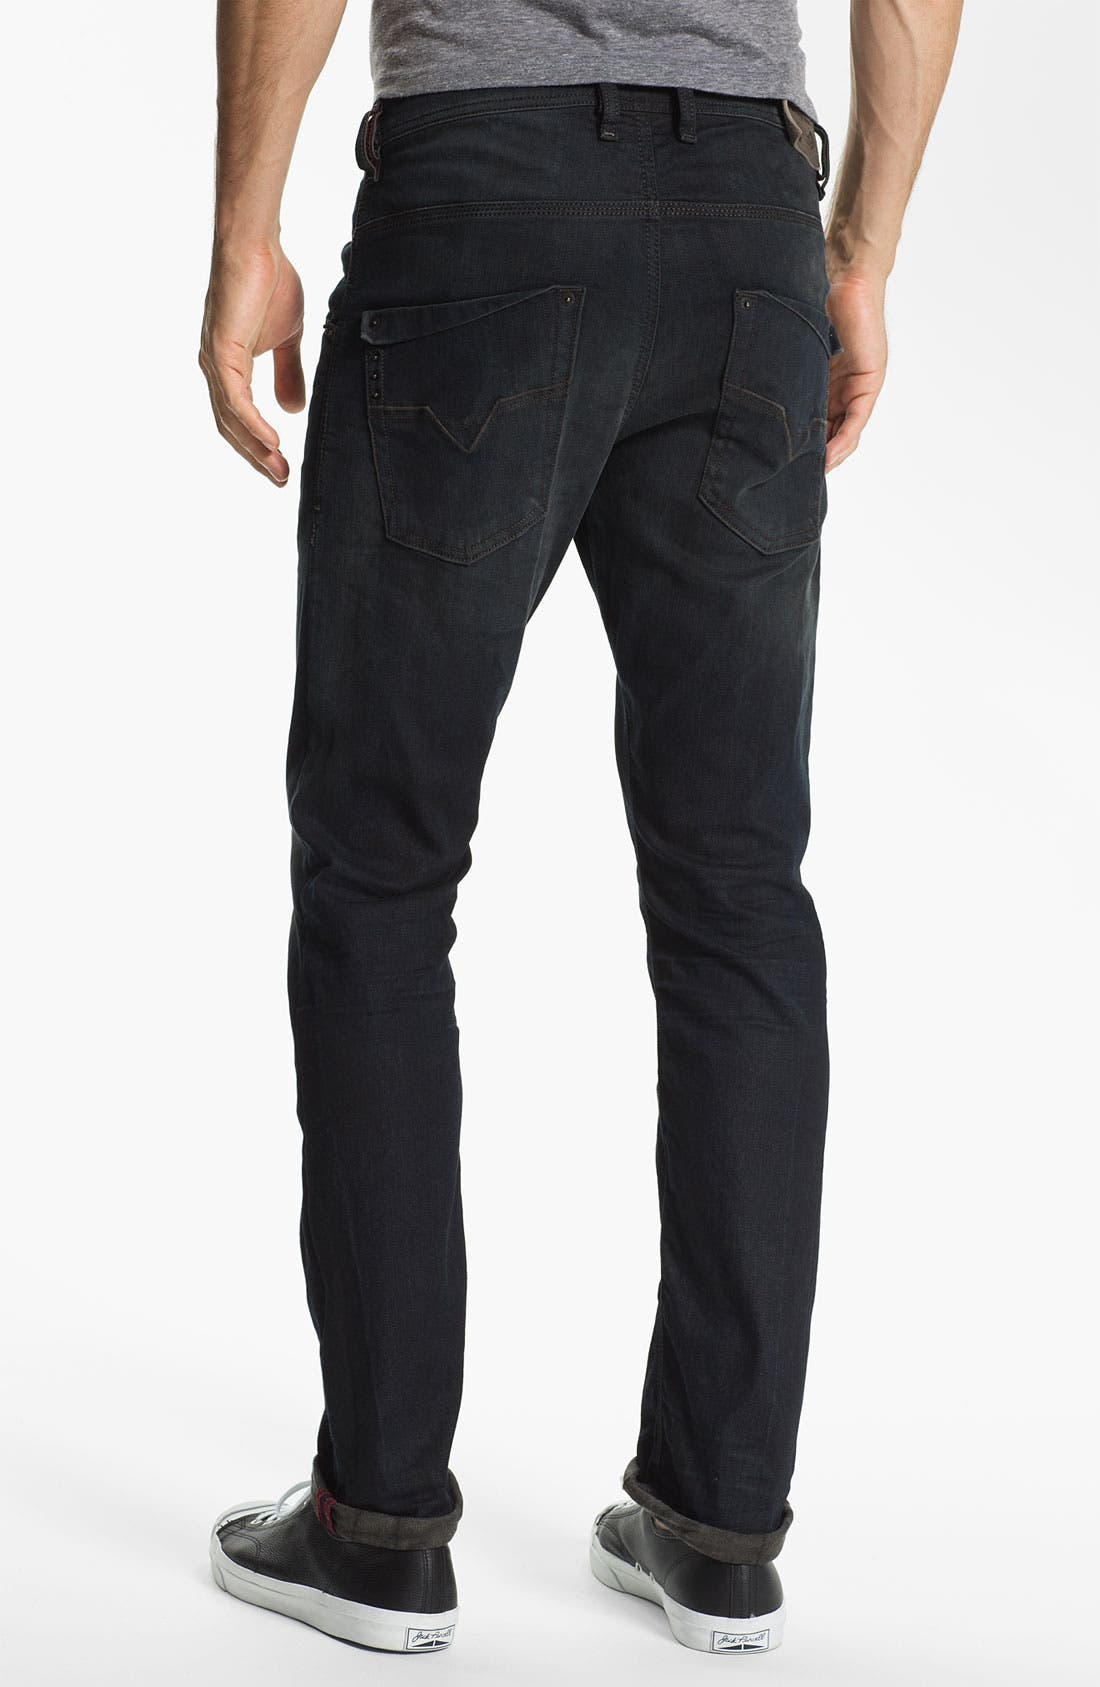 Alternate Image 1 Selected - DIESEL® 'Krooley' Relaxed Tapered Leg Jeans (0806Q) (Online Exclusive)